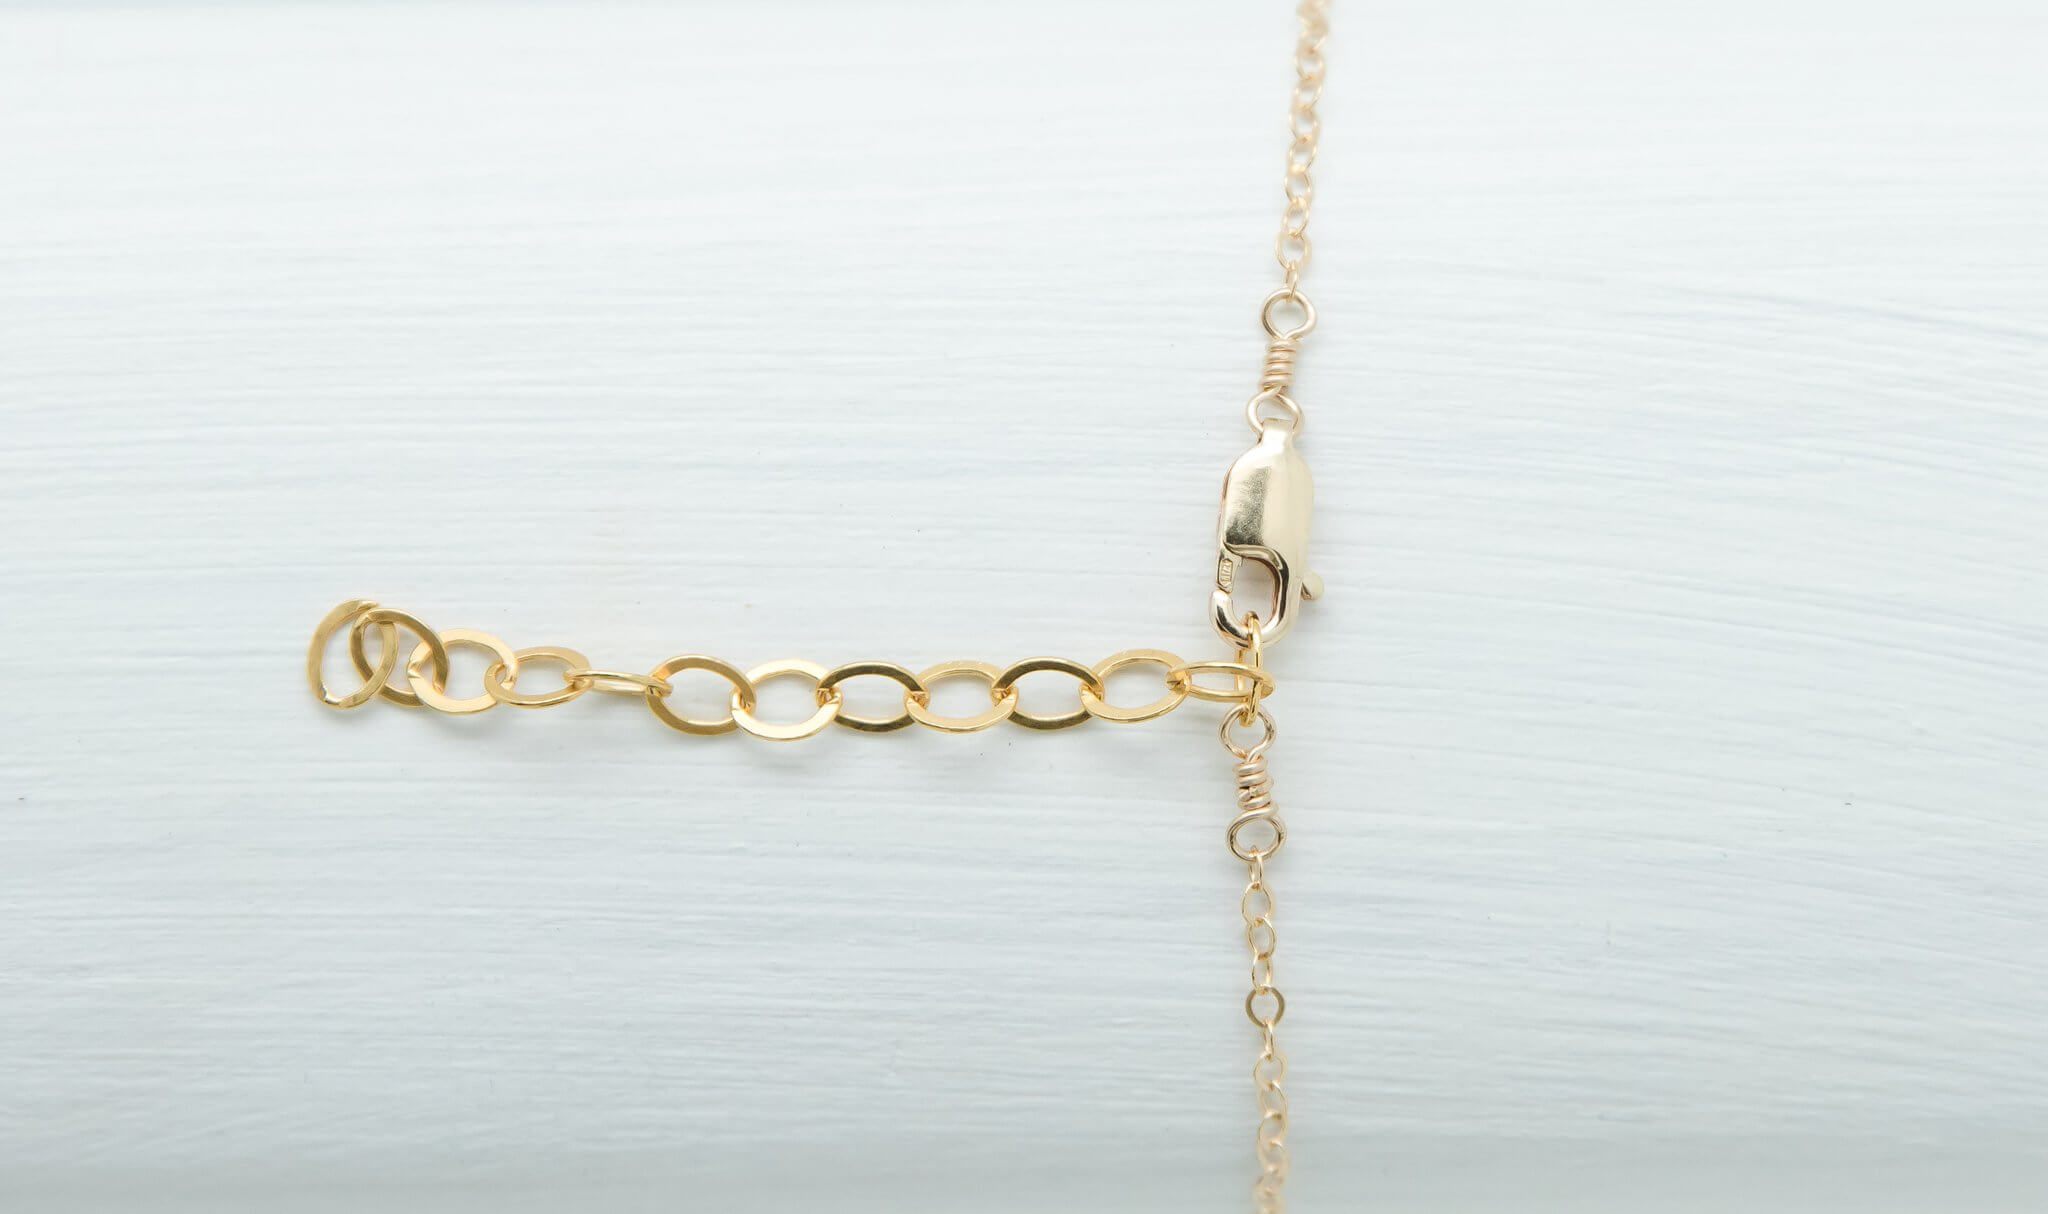 Anna Janelle Jewelry - The Dainty Goddess Ketting - INGAR